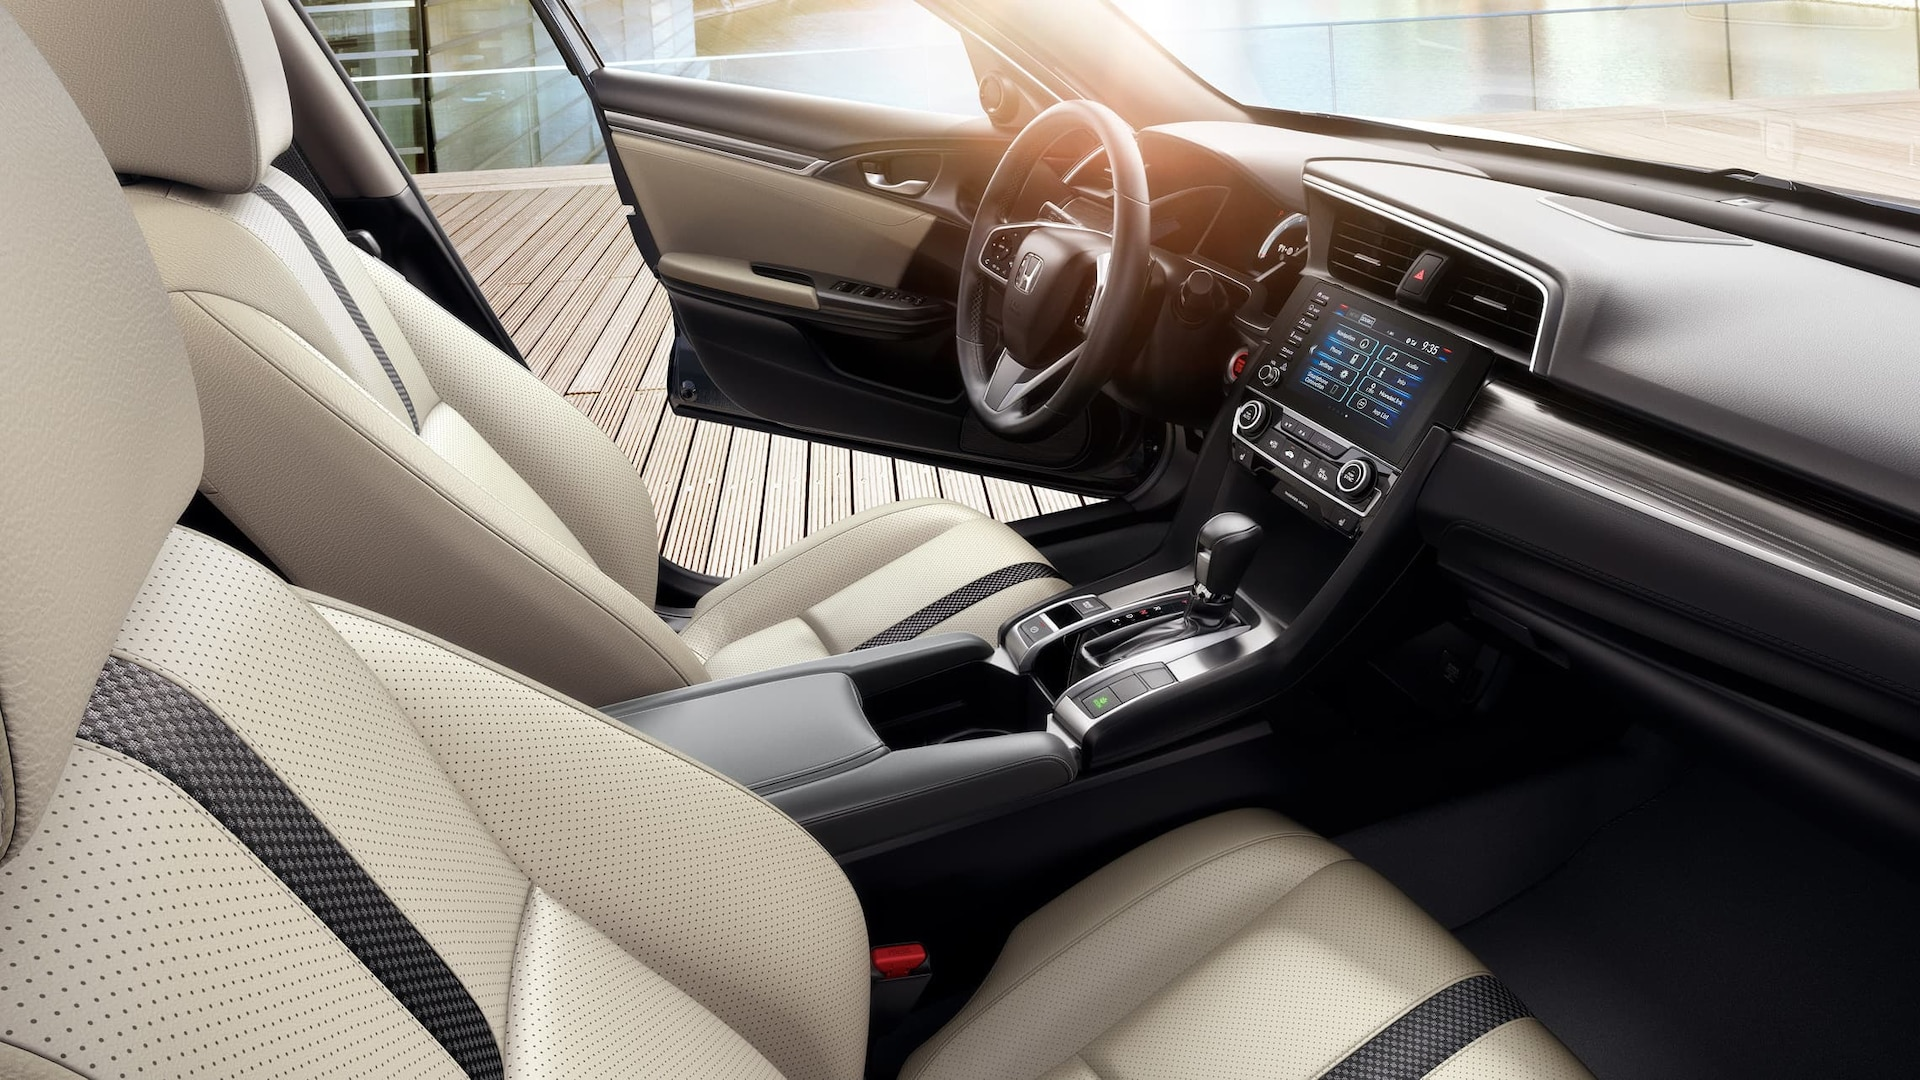 Interior passenger-side view of front seats in the 2021 Honda Civic Touring Sedan in Ivory Leather.